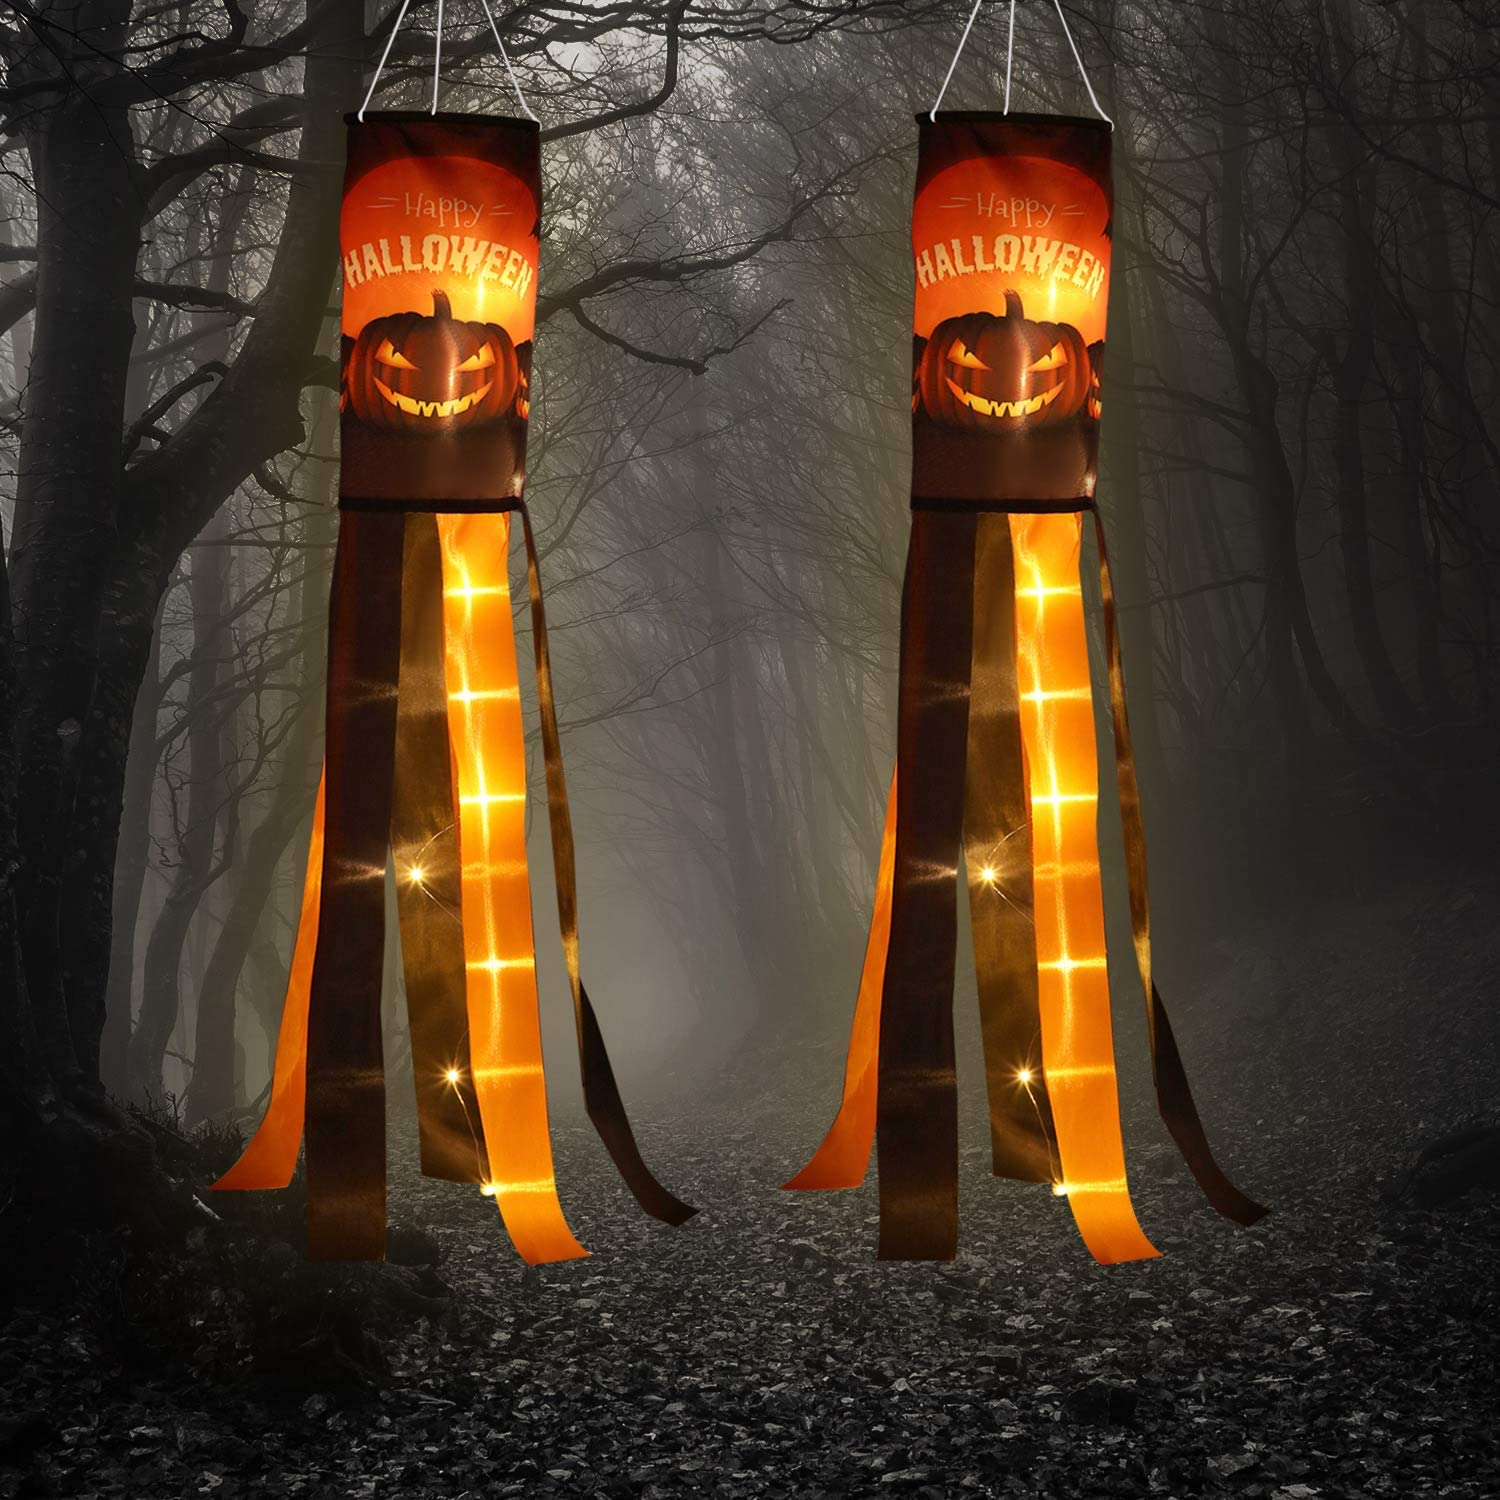 Frienda 2 Pack Halloween Pumpkin Windsock Flag with Warm Yellow LED Lights Outdoor Happy Halloween Hanging Decor for Yard Patio Garden Pathway Party Decoration